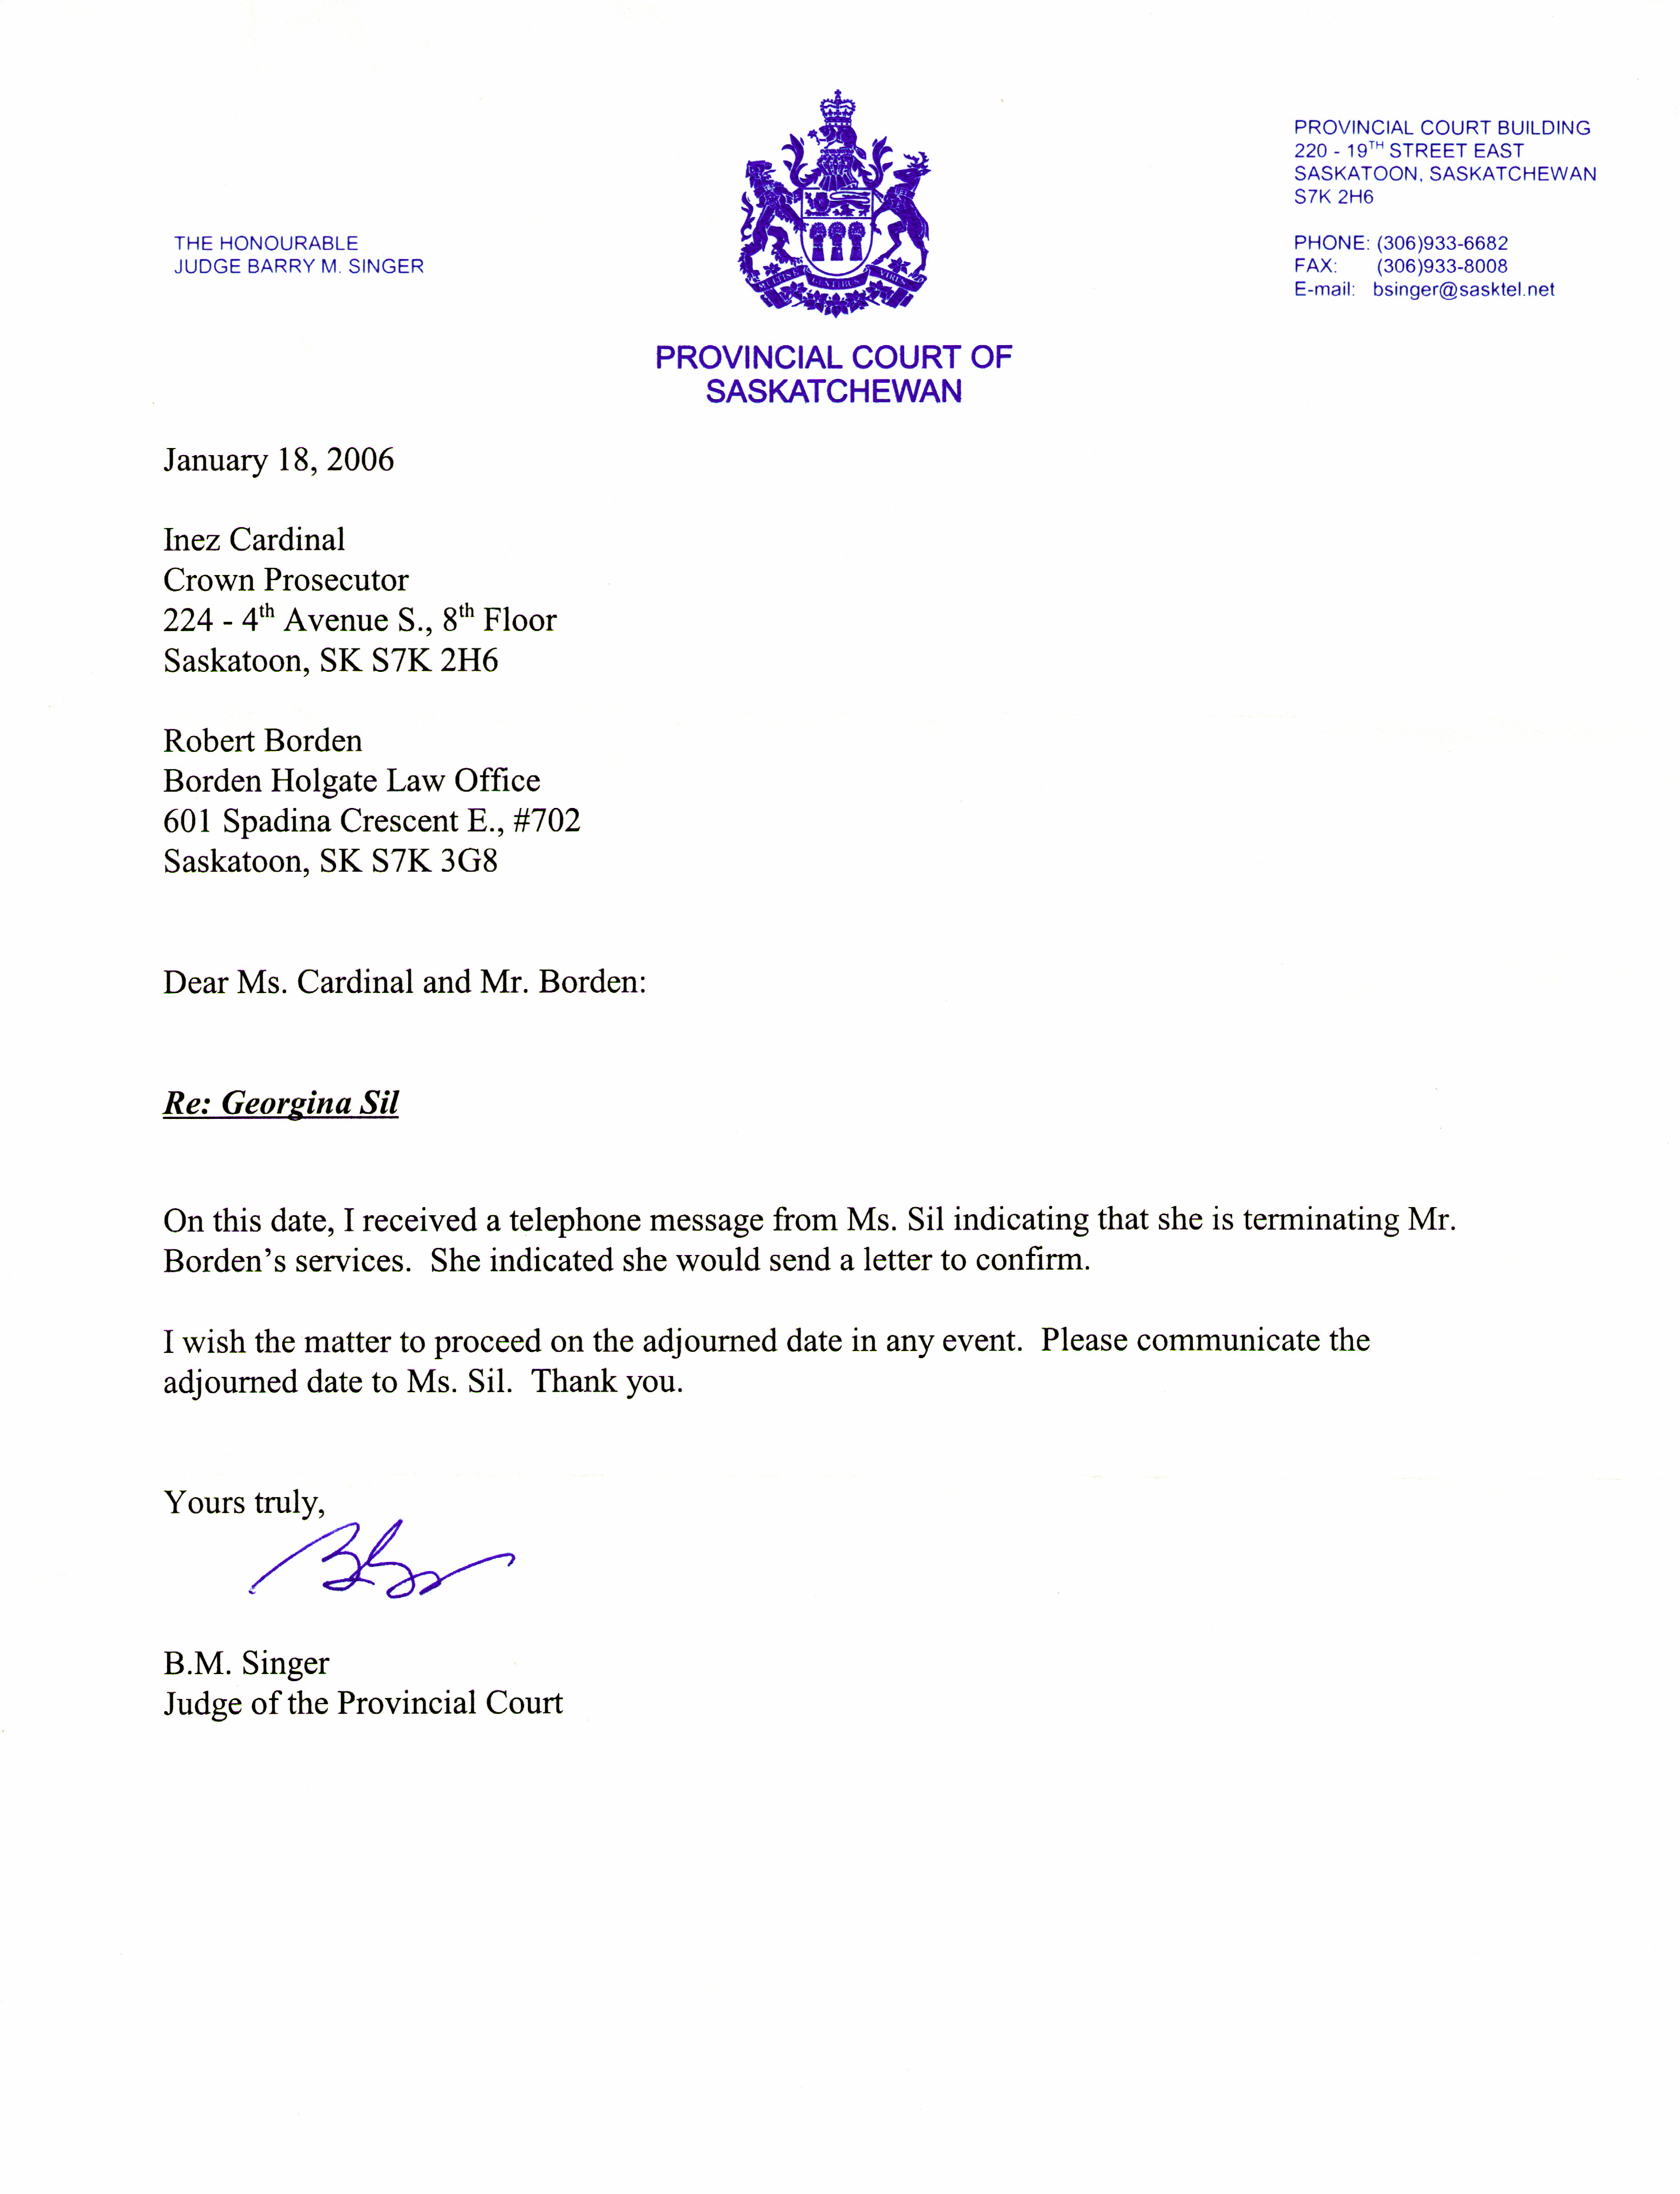 Letter to terminate attorney representation charlotte clergy coalition letter of representation attorney from judge singer fire robert spiritdancerdesigns Images